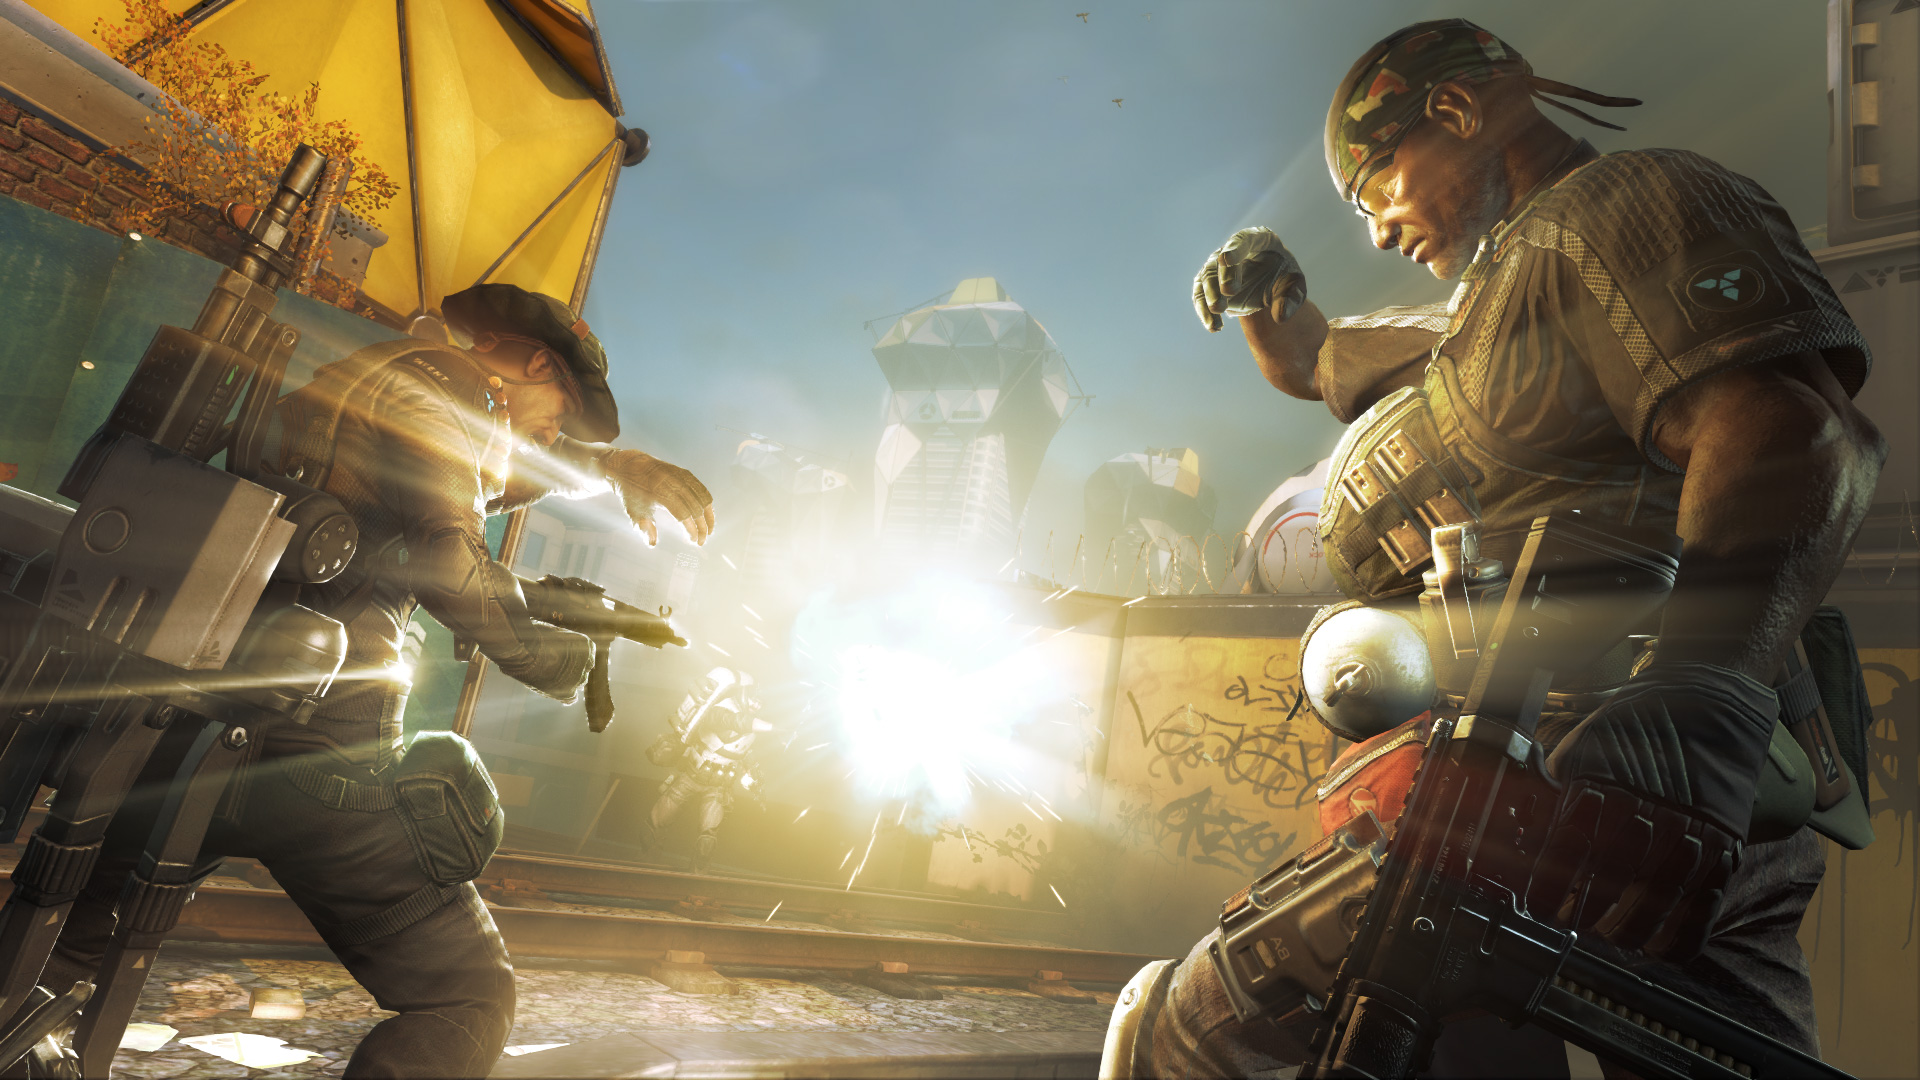 Developer Splash Damage's free-to-play online shooter Extraction.